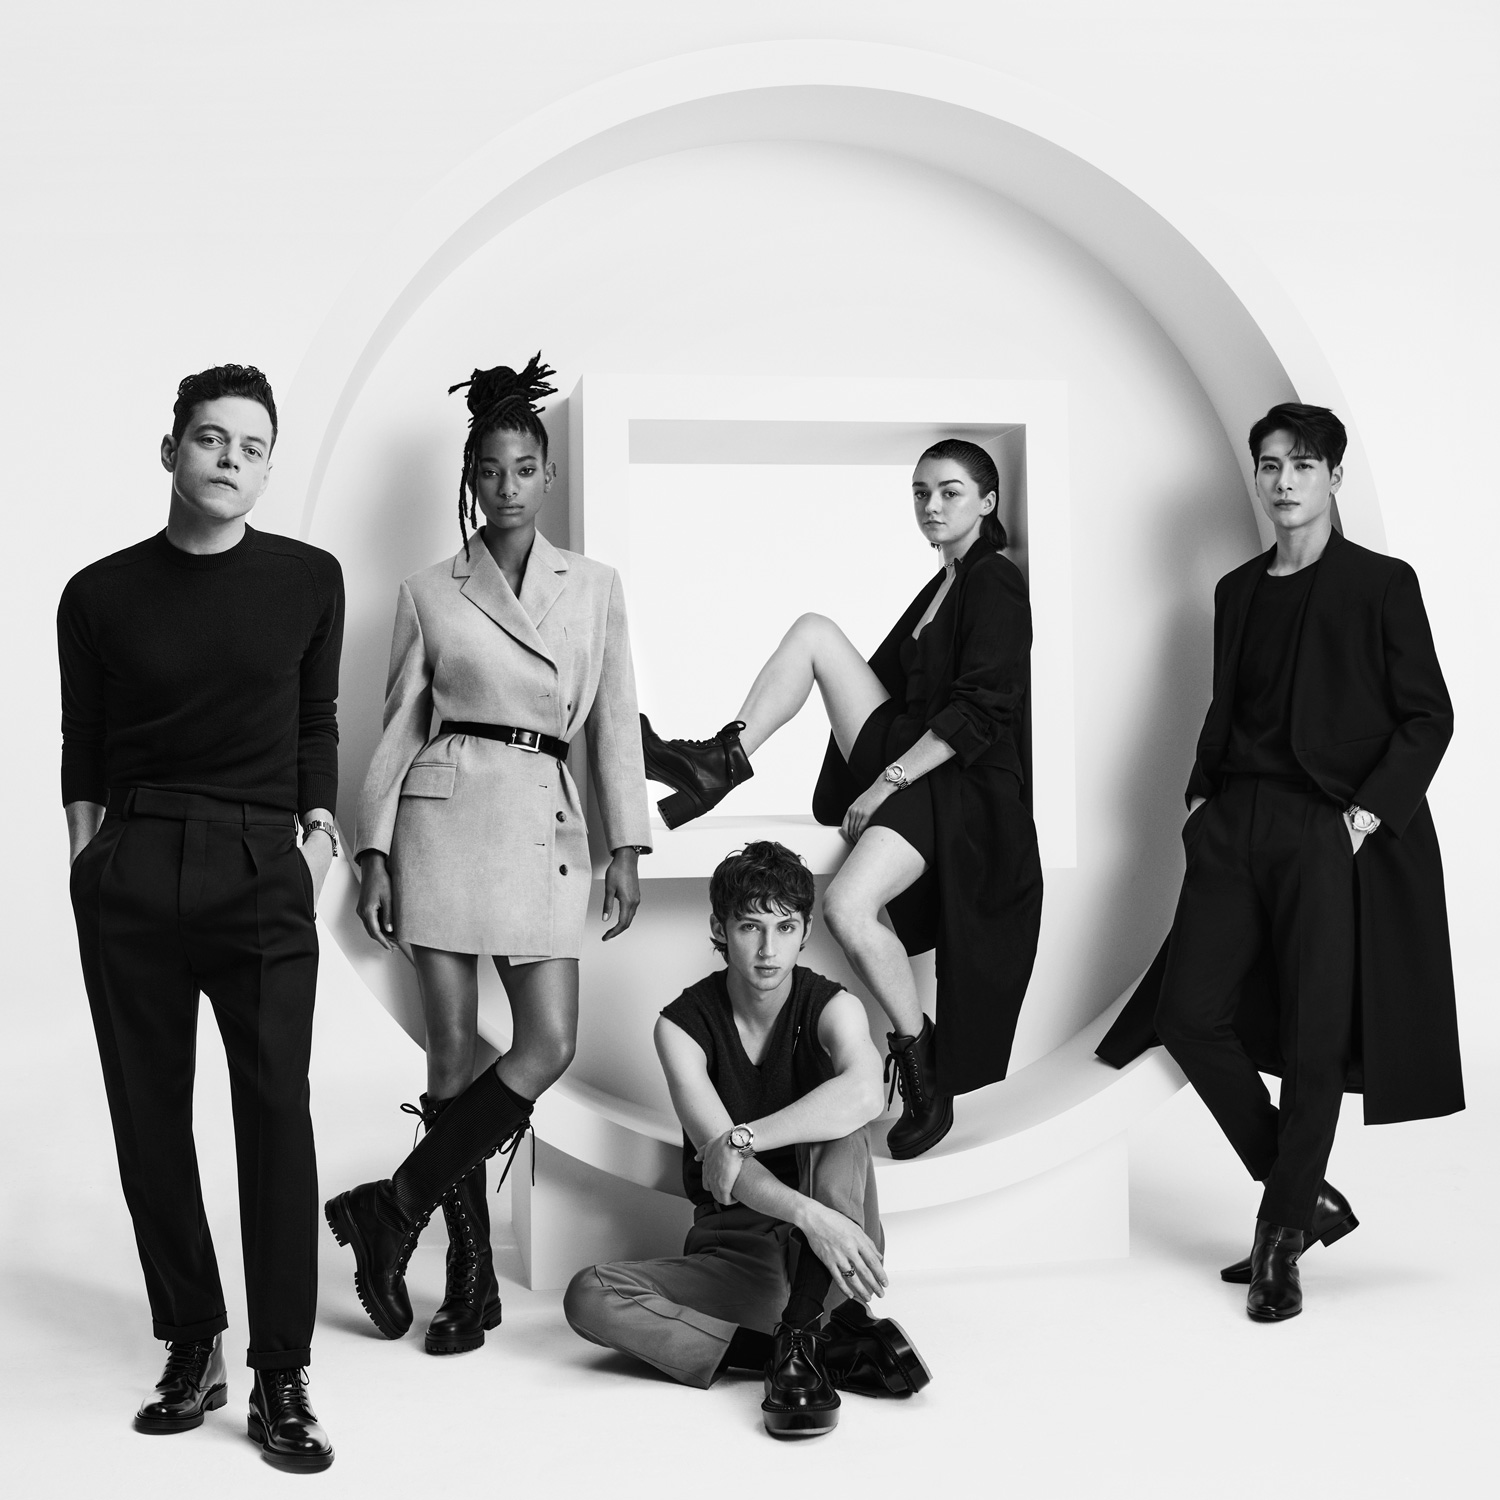 Rami Malek, Willow Smith, Troye Sivan, Maisie Williams et Jackson Wang par Craig McDean pour Cartier